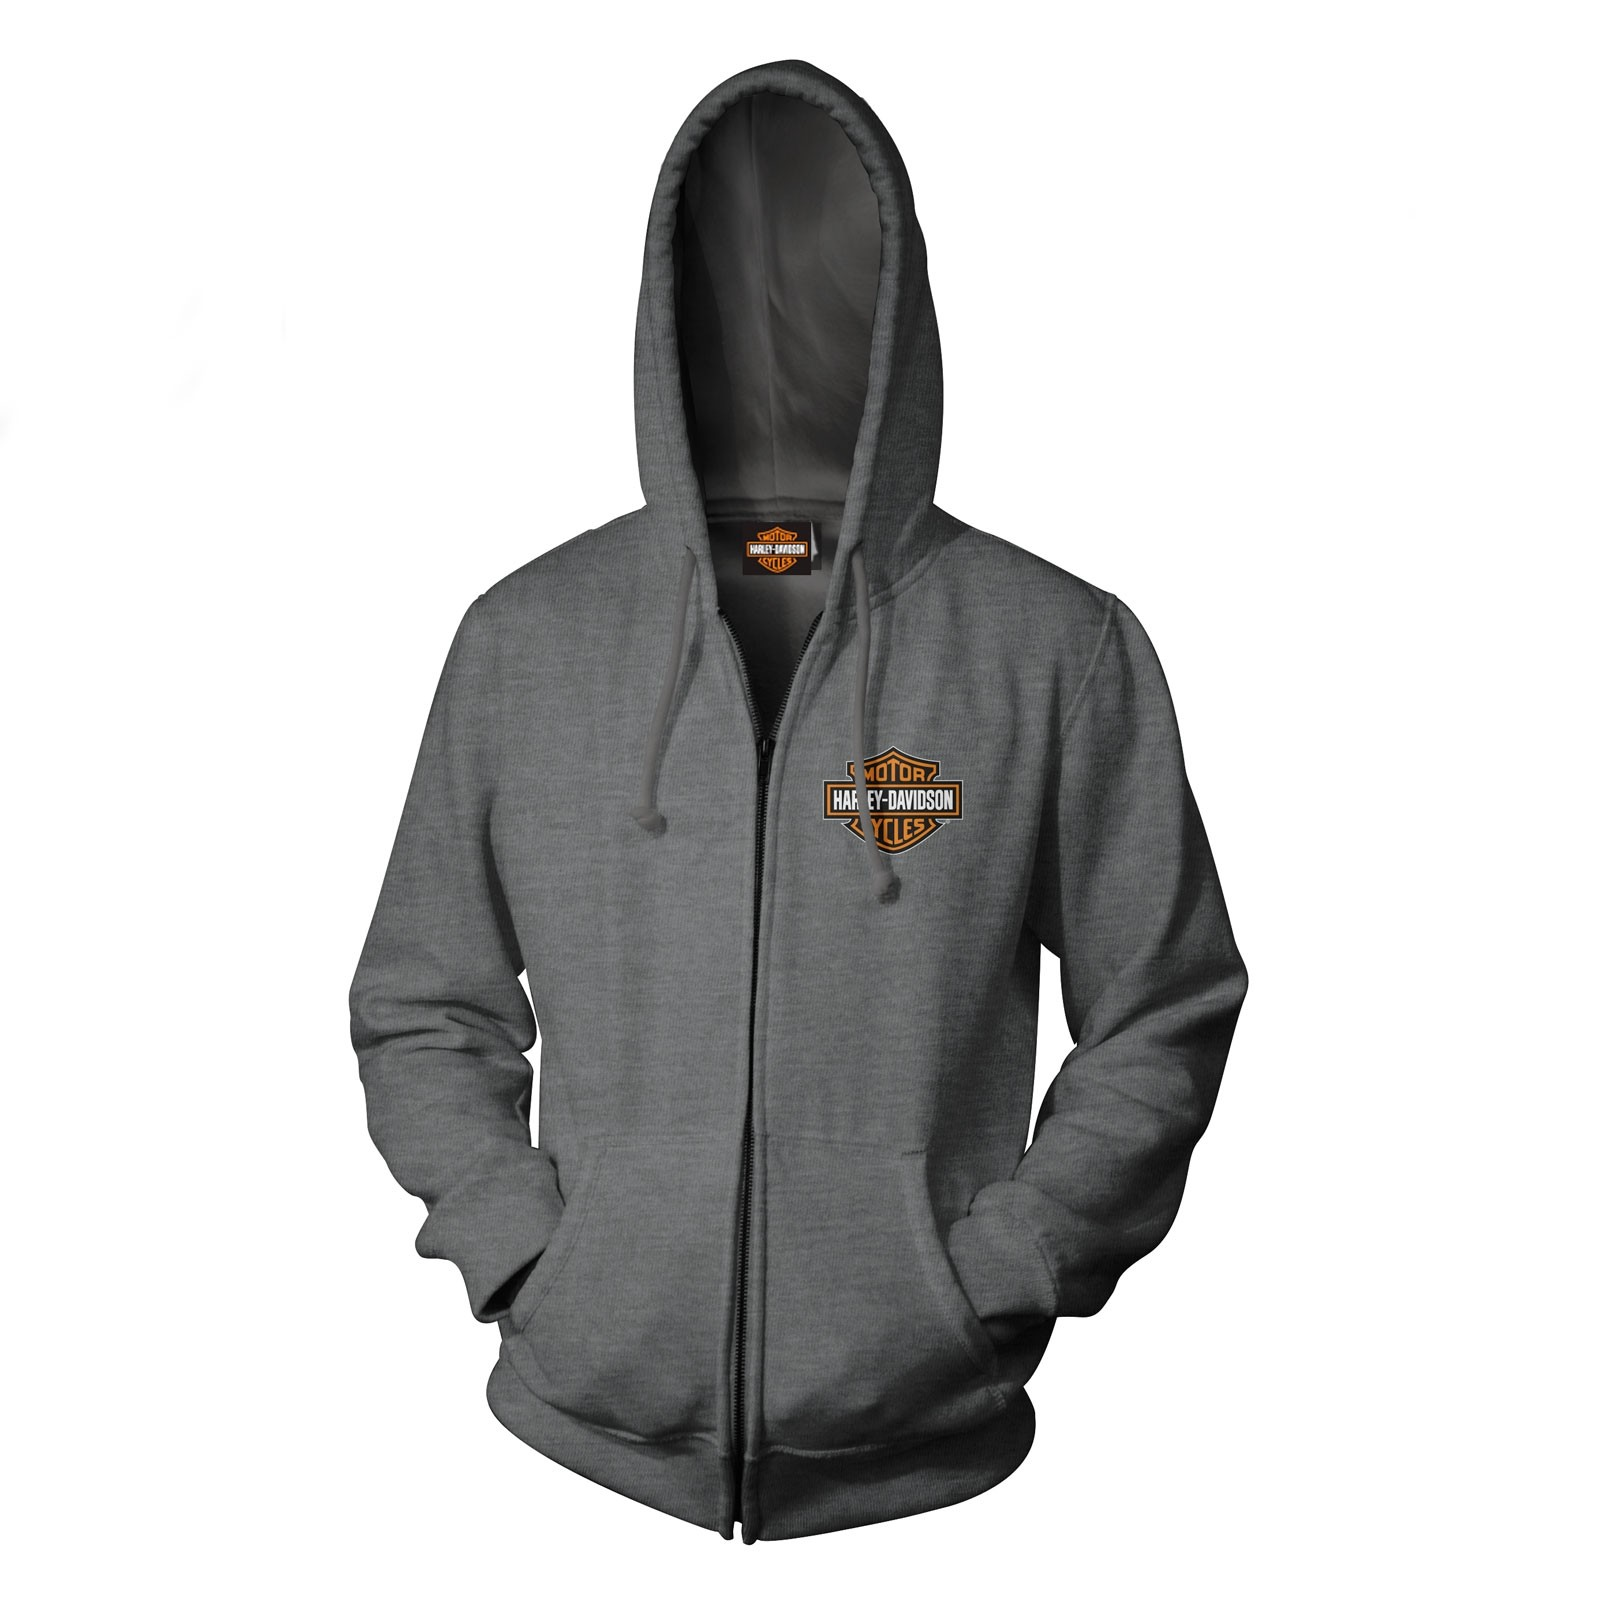 Harley-Davidson Military - Men's Bar & Shield Graphic Zip Hoodie Sweatshirt - Overseas Tour | Military Skull Text